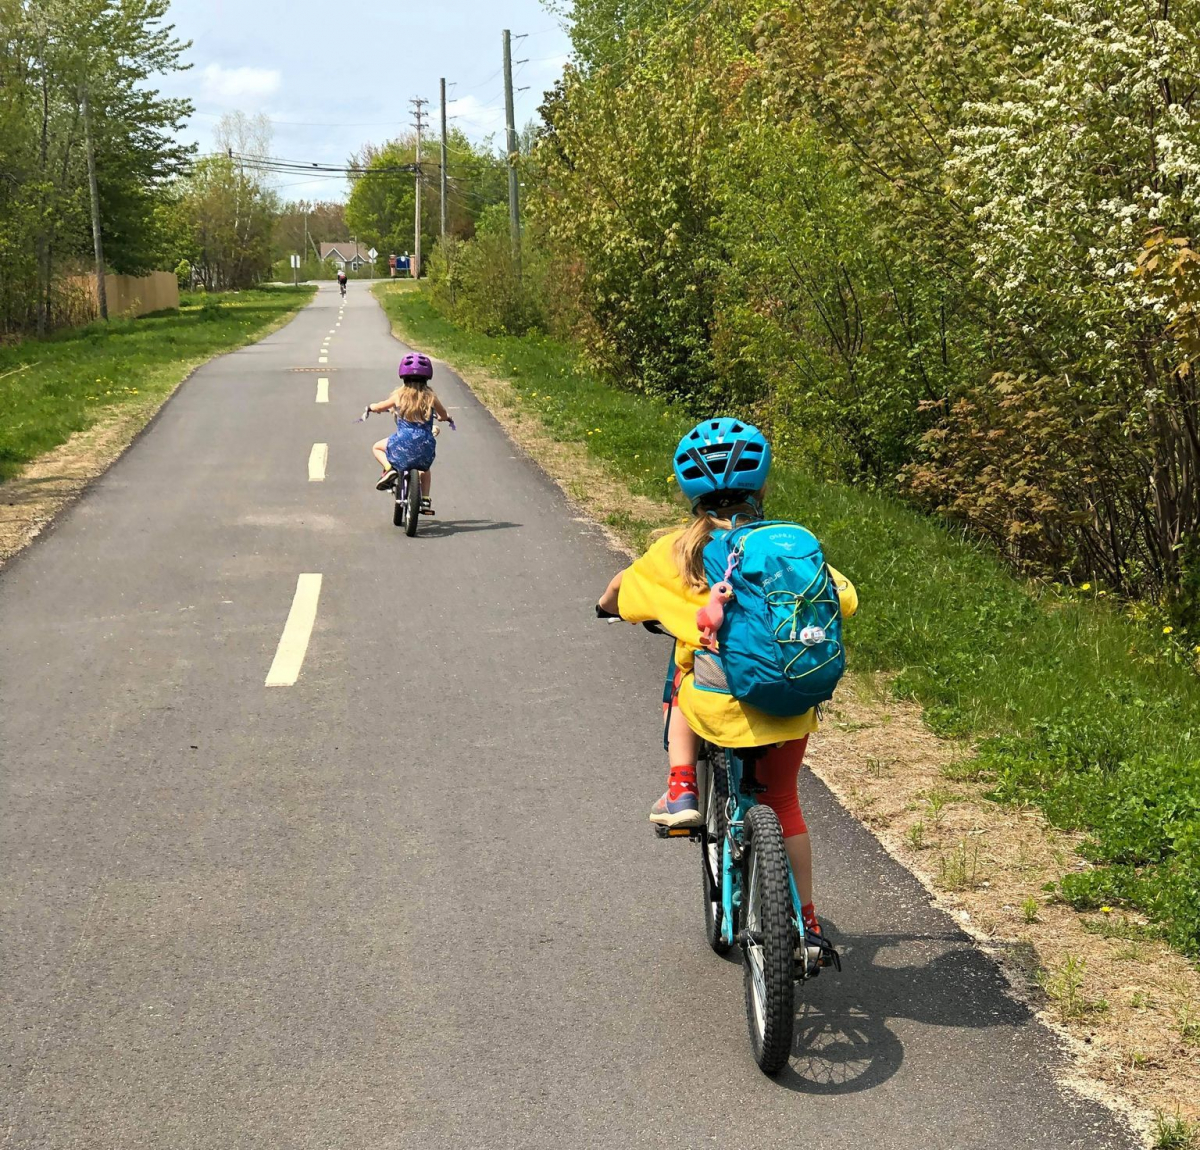 biking on paved trails